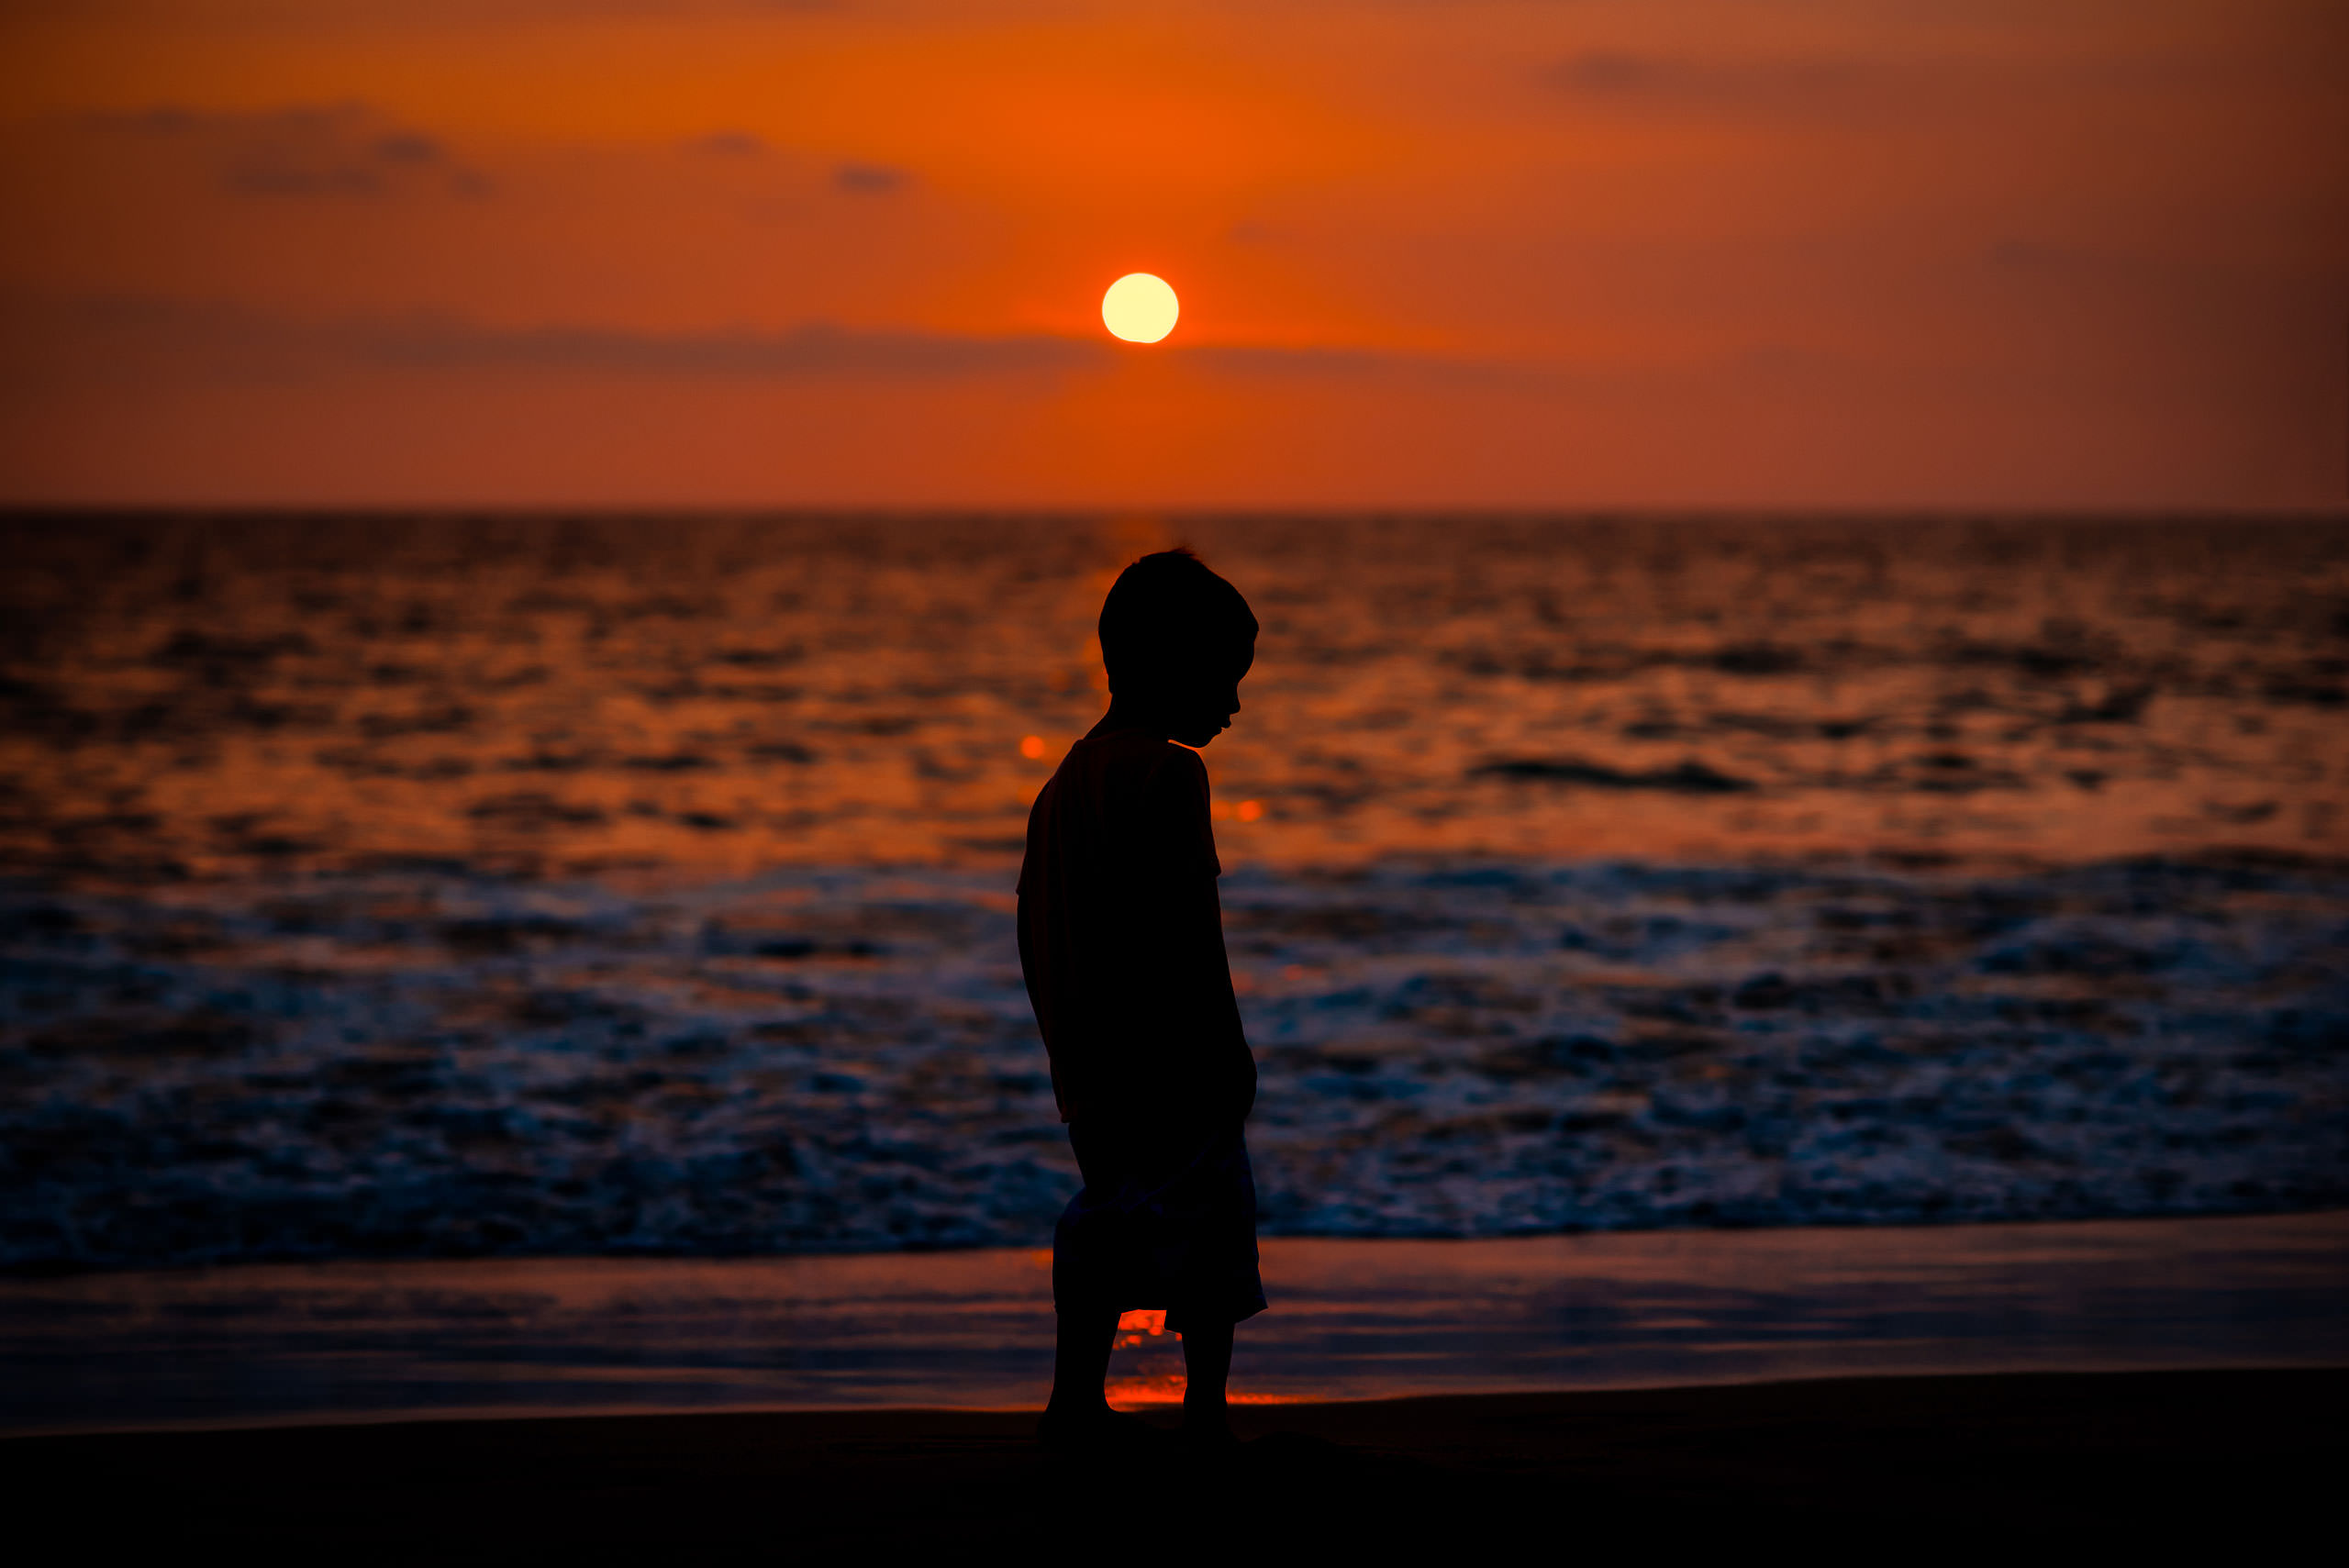 young boy on a Hawaiian beach at sunset silhouetted against the ocean by destination family photographers sean leblanc